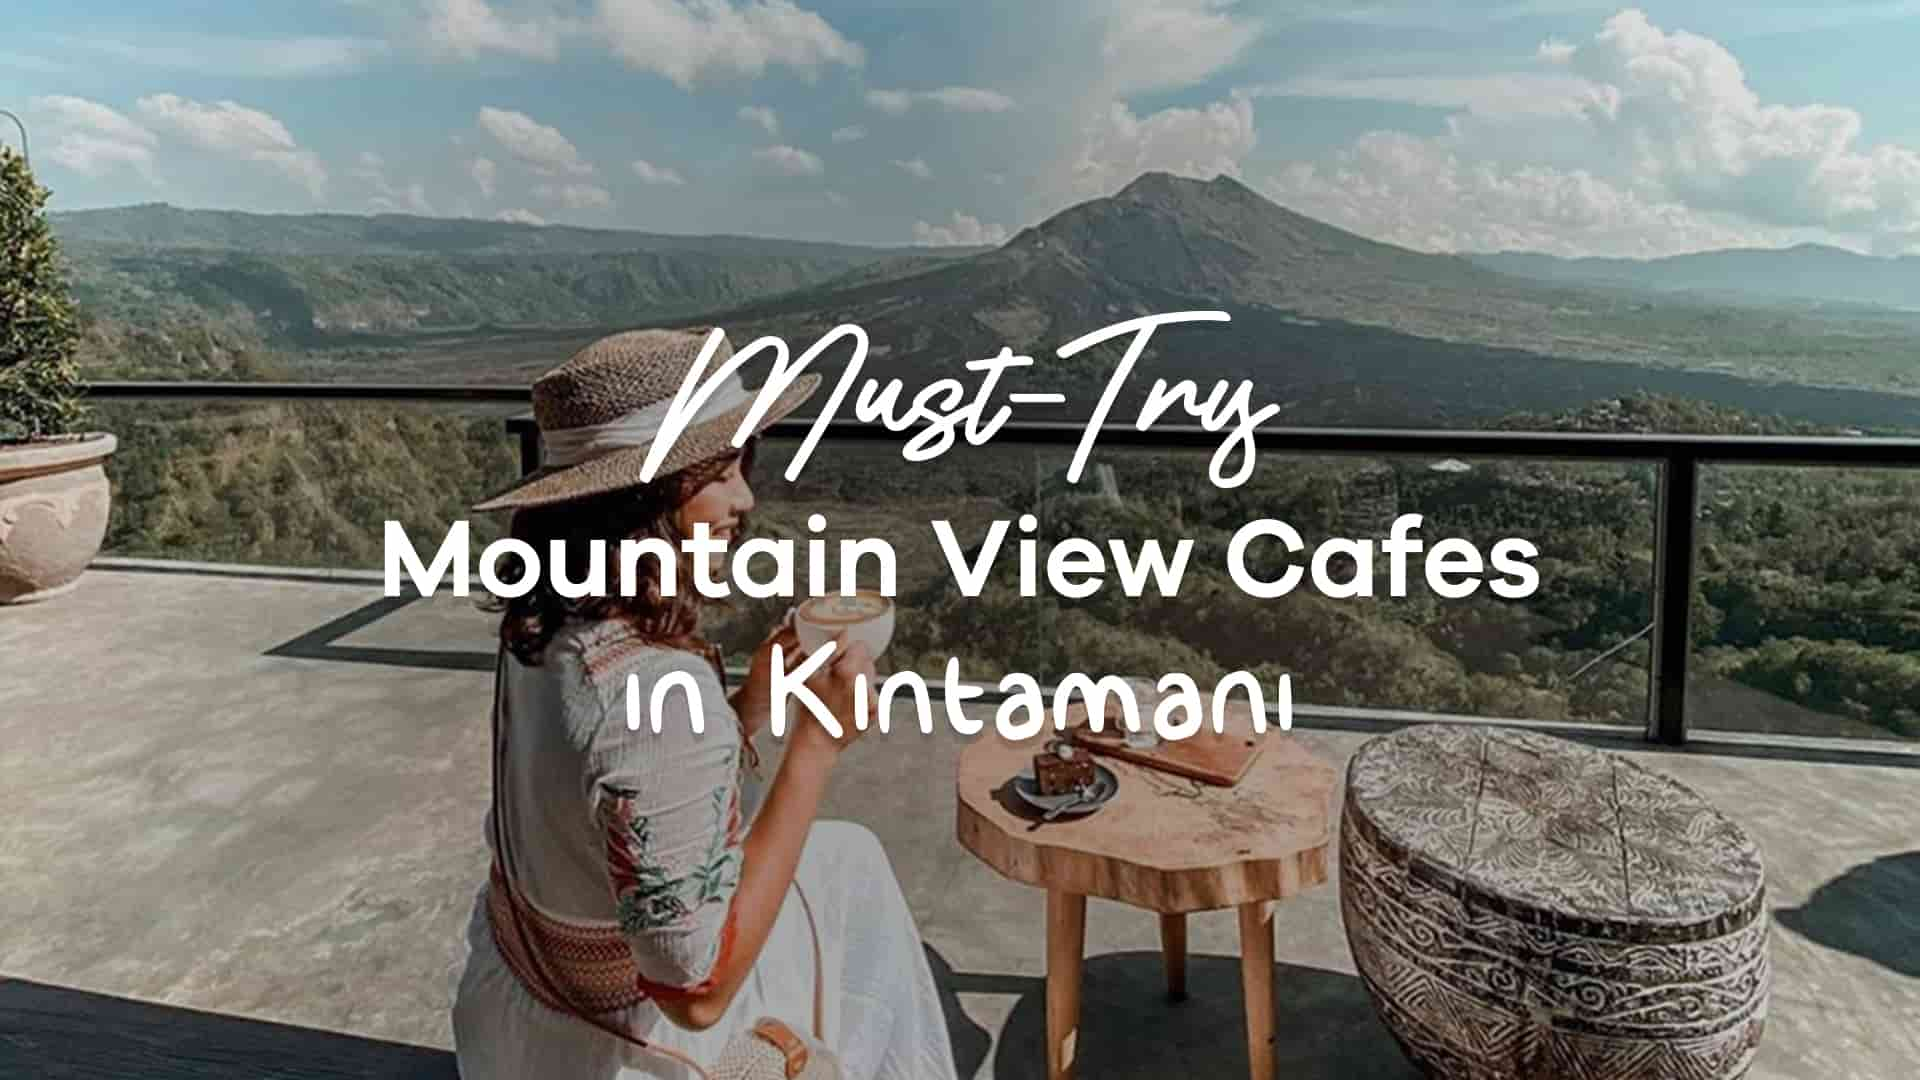 Must-Try Mountain View Cafes in Kintamani